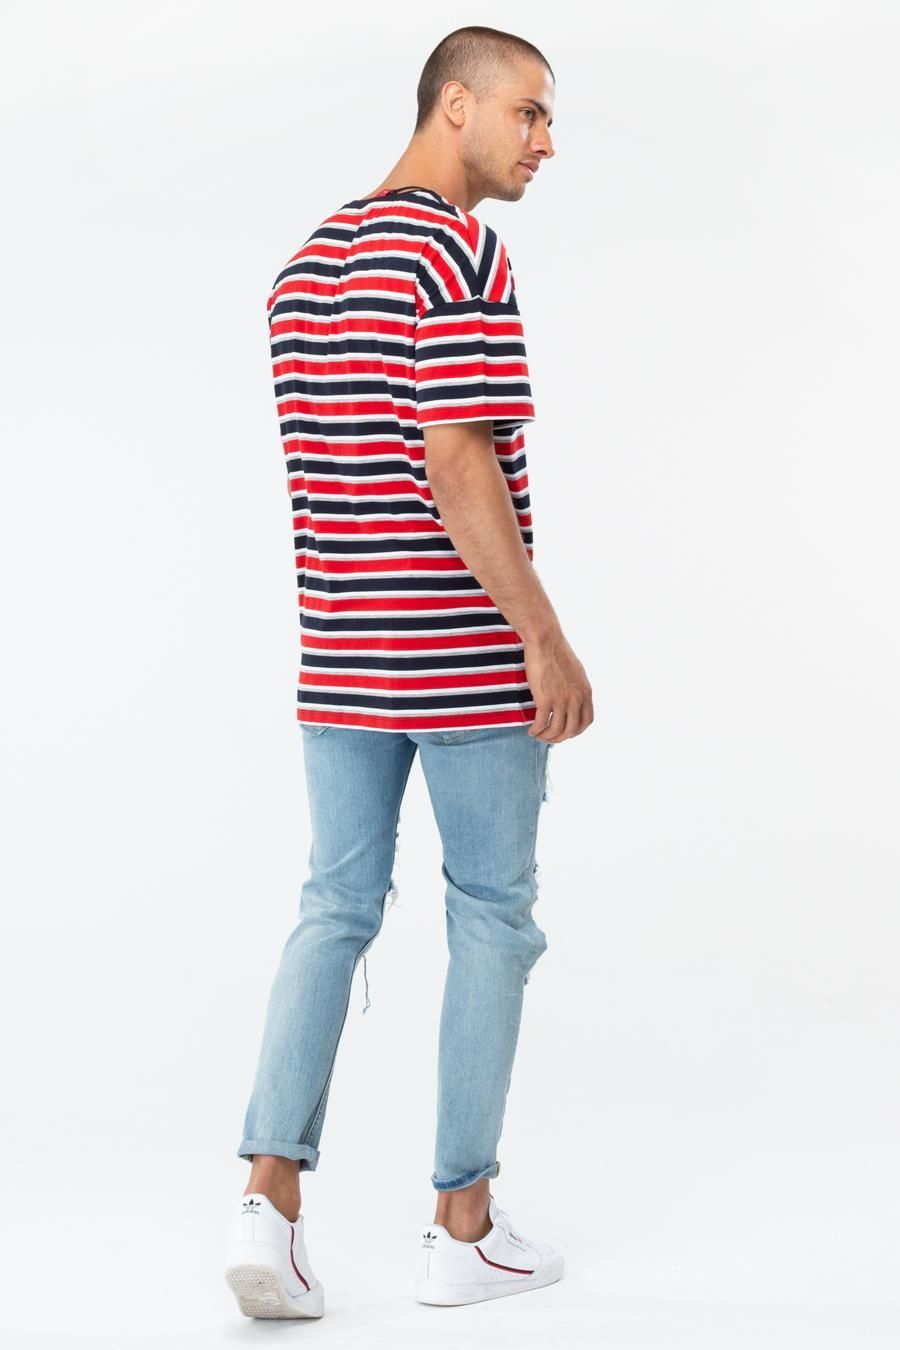 Hype Budweiser Striped Mens Oversized T-Shirt